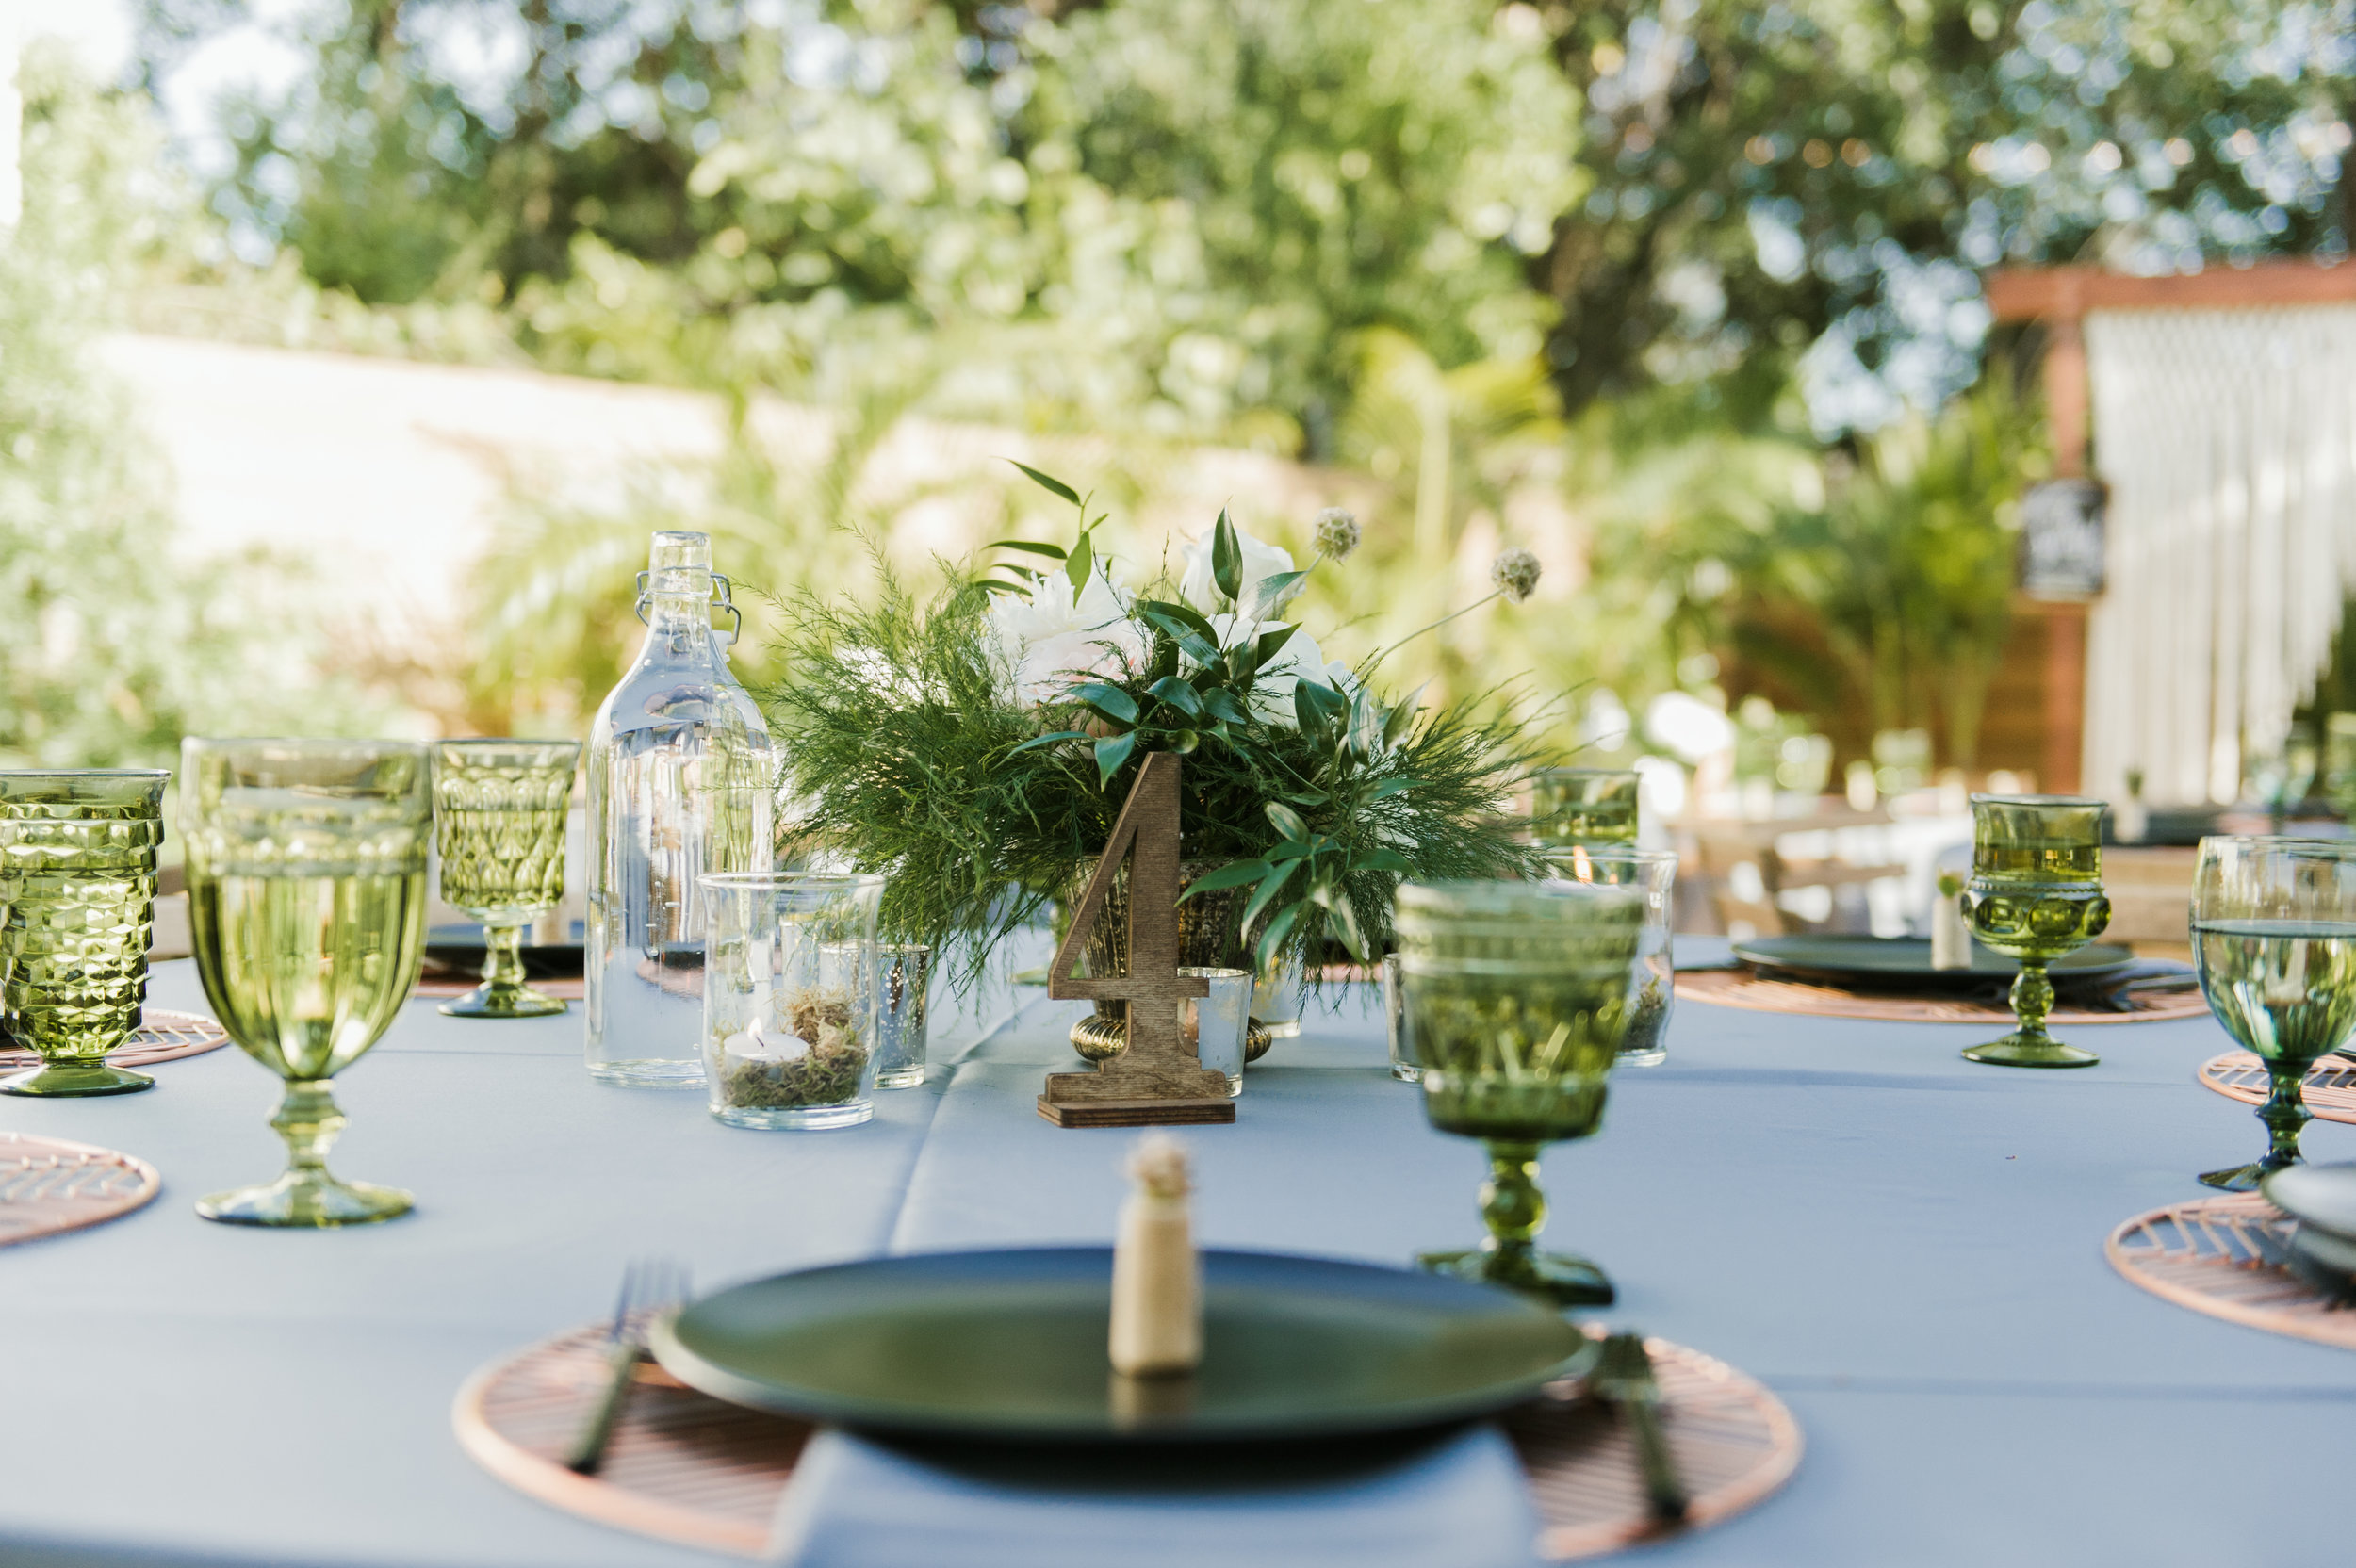 Accents of copper and other metals could also be found on tables, along with delicate succulents planted in wine corks at every place setting.